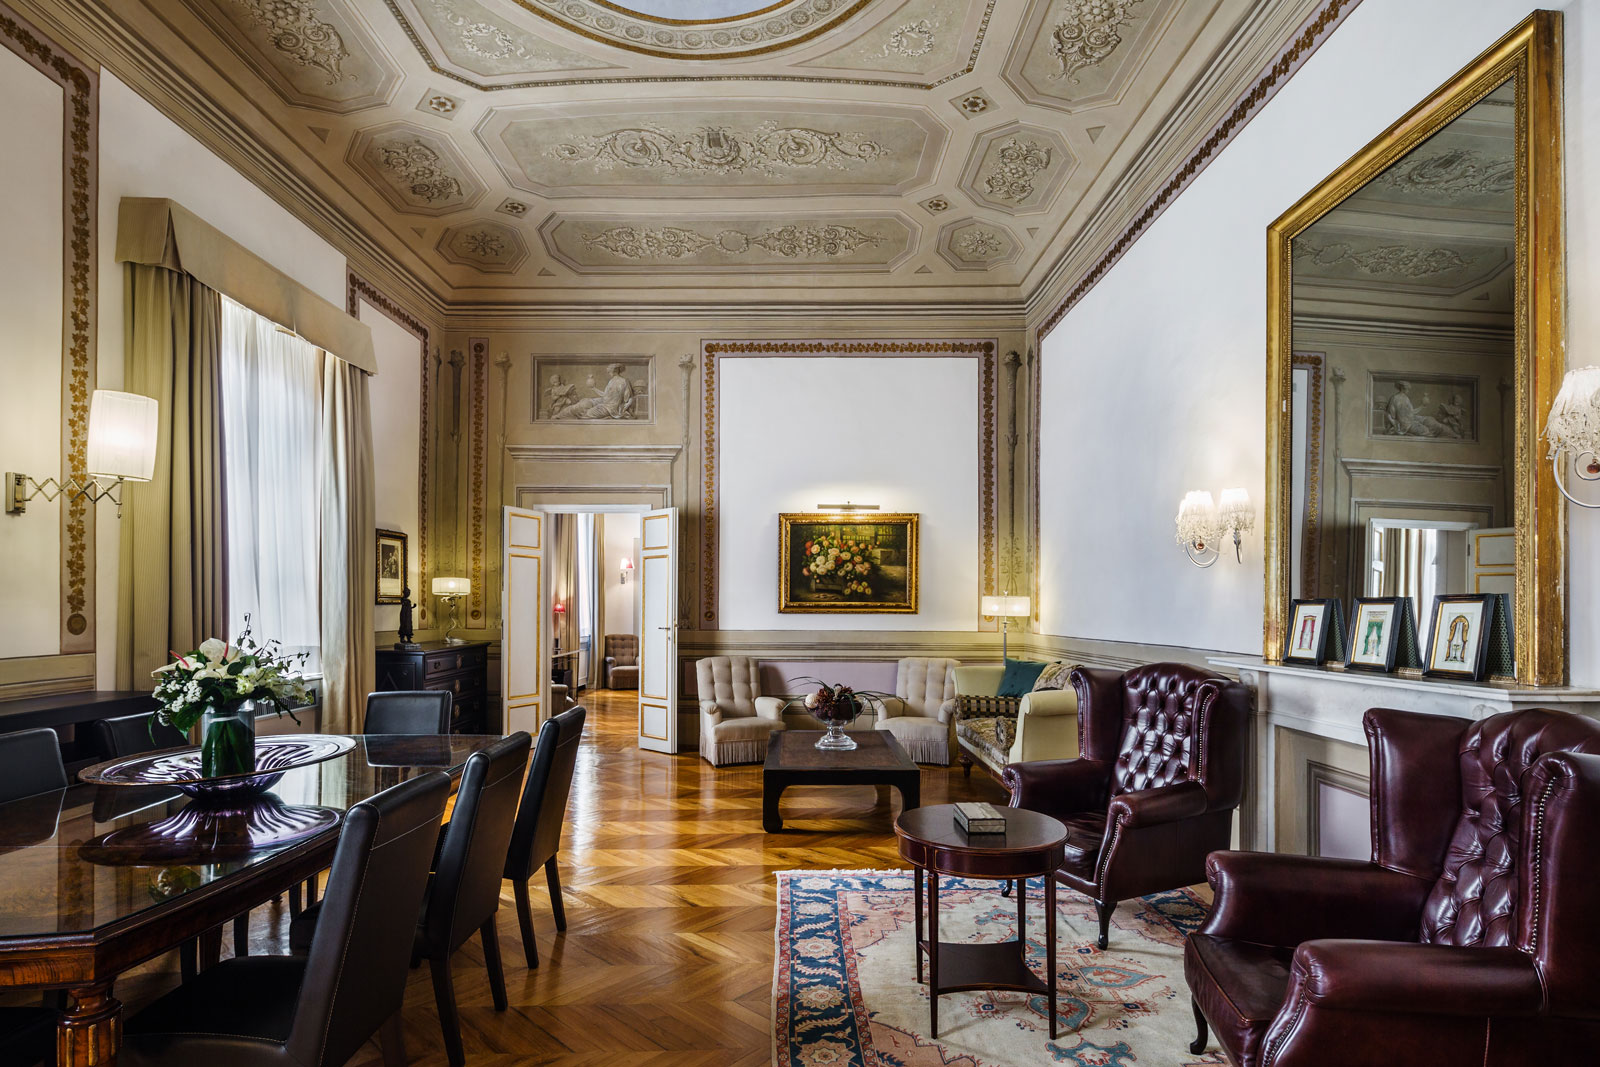 Living room of the Da Verrazzano Suite of the Relais Santa Croce in Florence